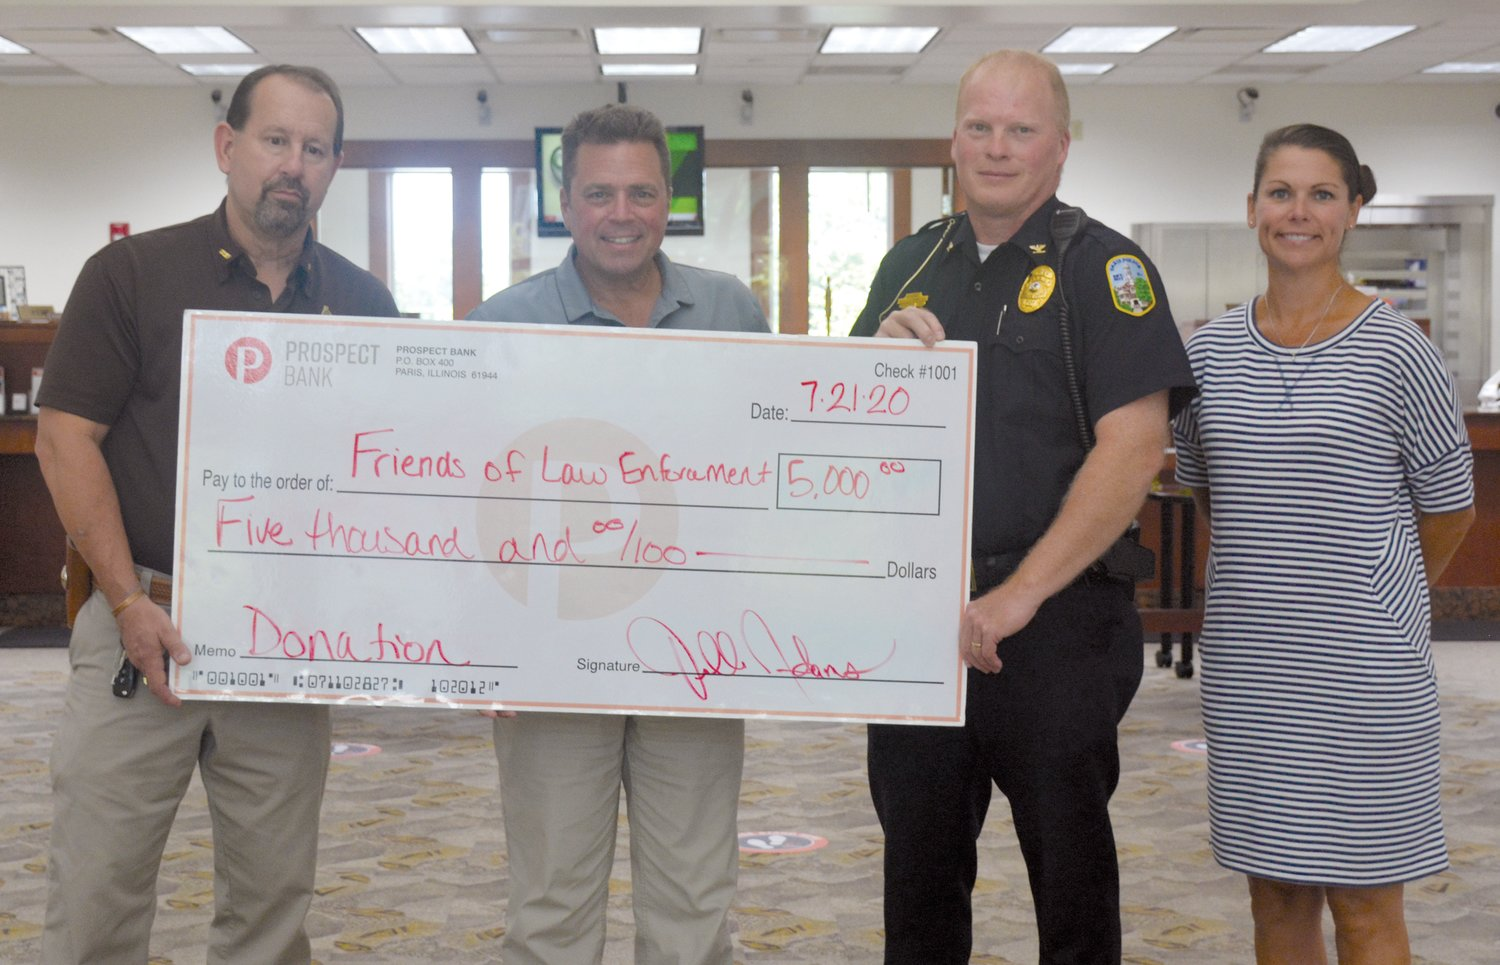 Prospect Bank of Paris presented a $5,000 check to Friends of Edgar County Law Enforcement in support of providing better equipment for all county and city officers. Pictured from left are Sheriff Jeff Wood, Eric Volkmann, president and CEO of Prospect Bank, Paris Police Chief Eric Brown and Prospect executive vice-president Jenelle Adams.